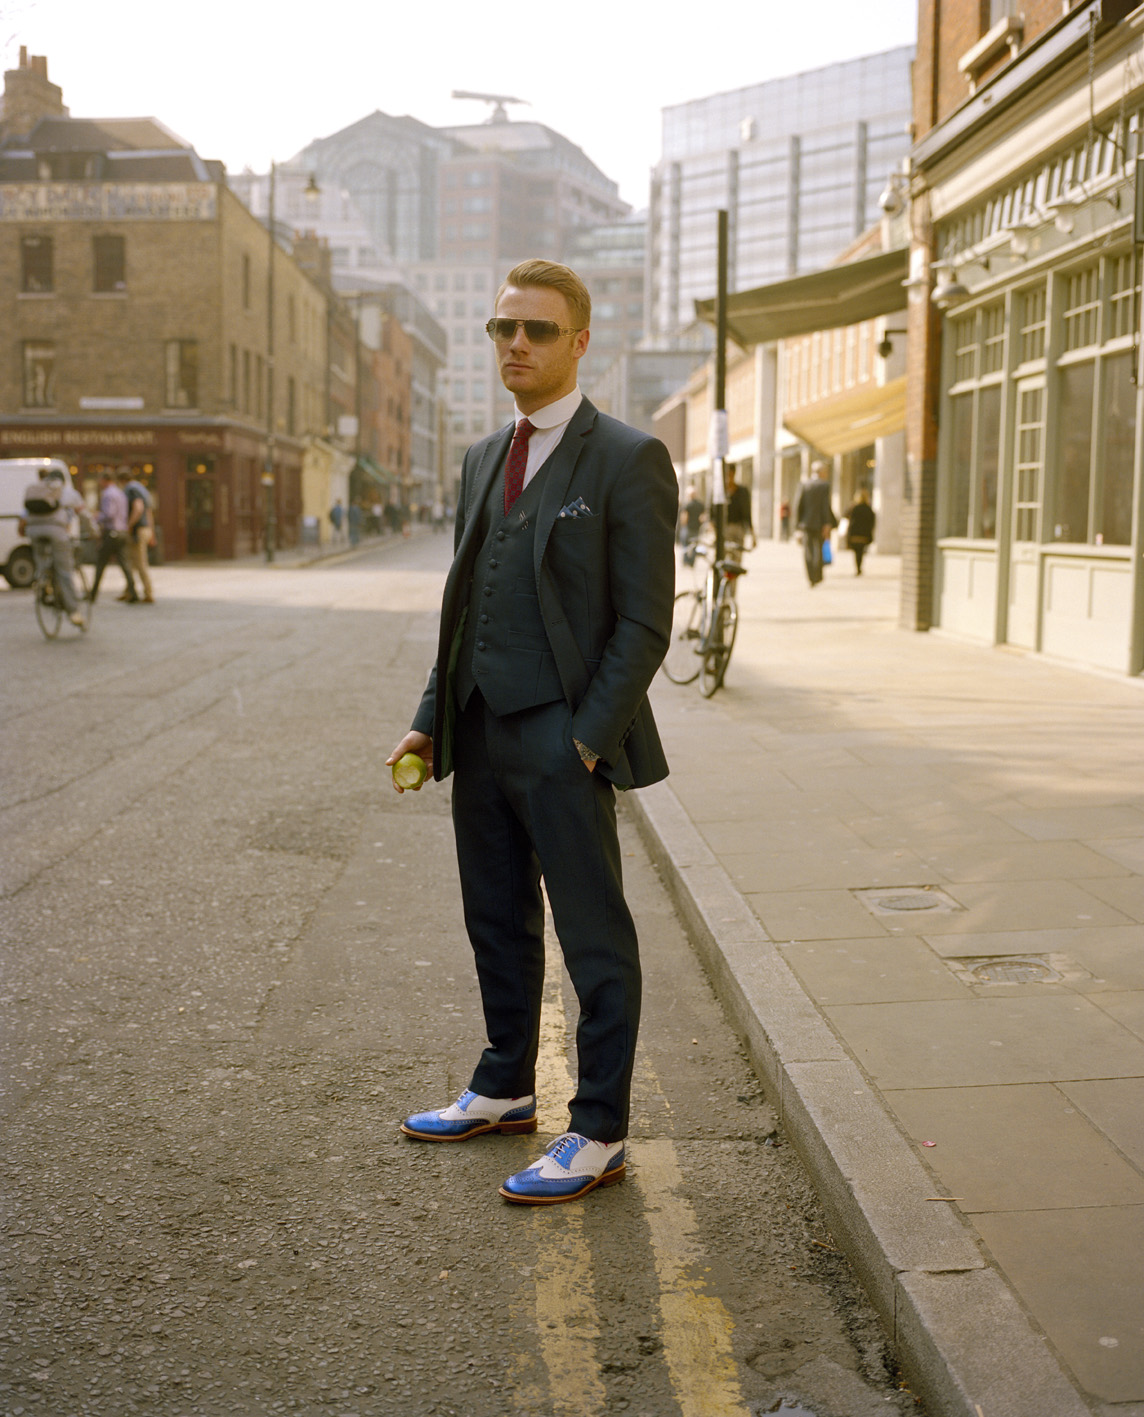 Brushfield Street, London - April 2012